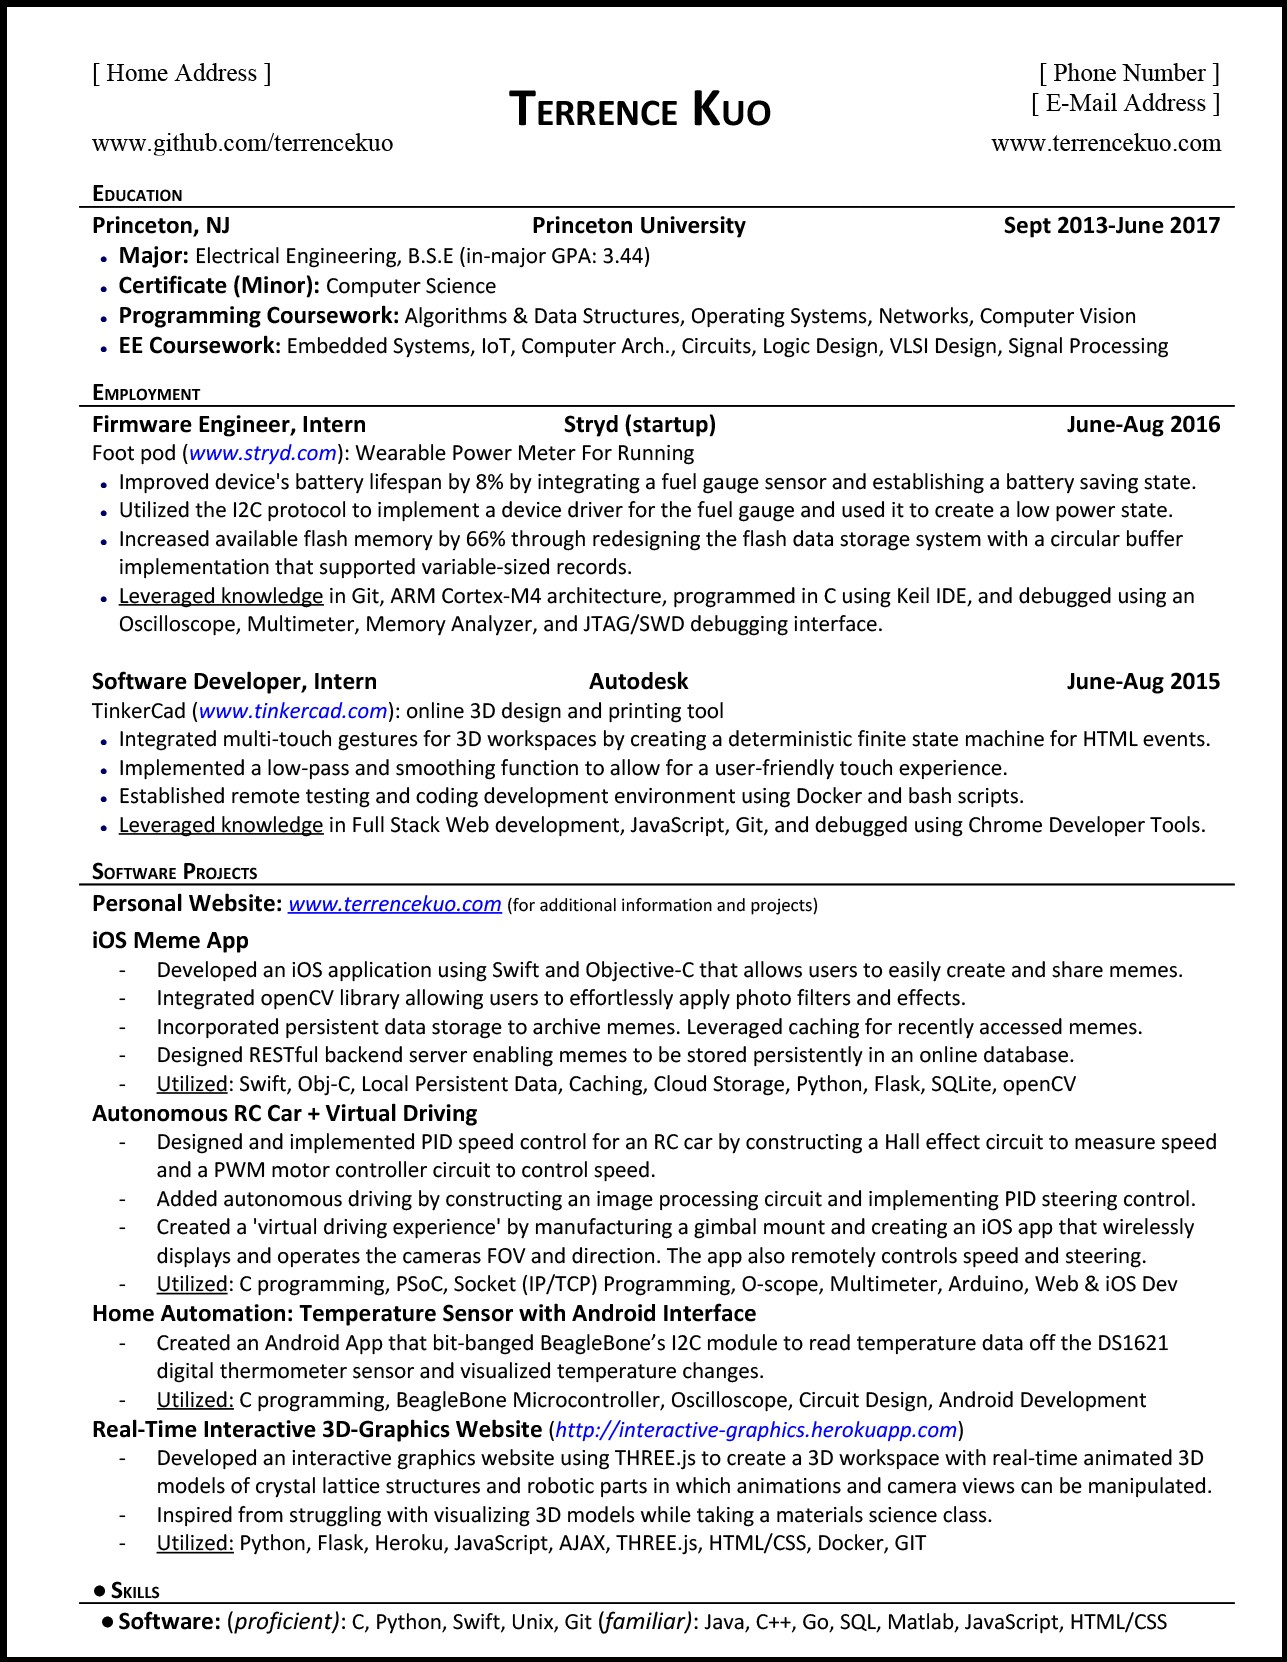 to write killer software engineering résumé by terrence kuo freecodecamp org medium Resume Dale Carnegie Certification On Resume